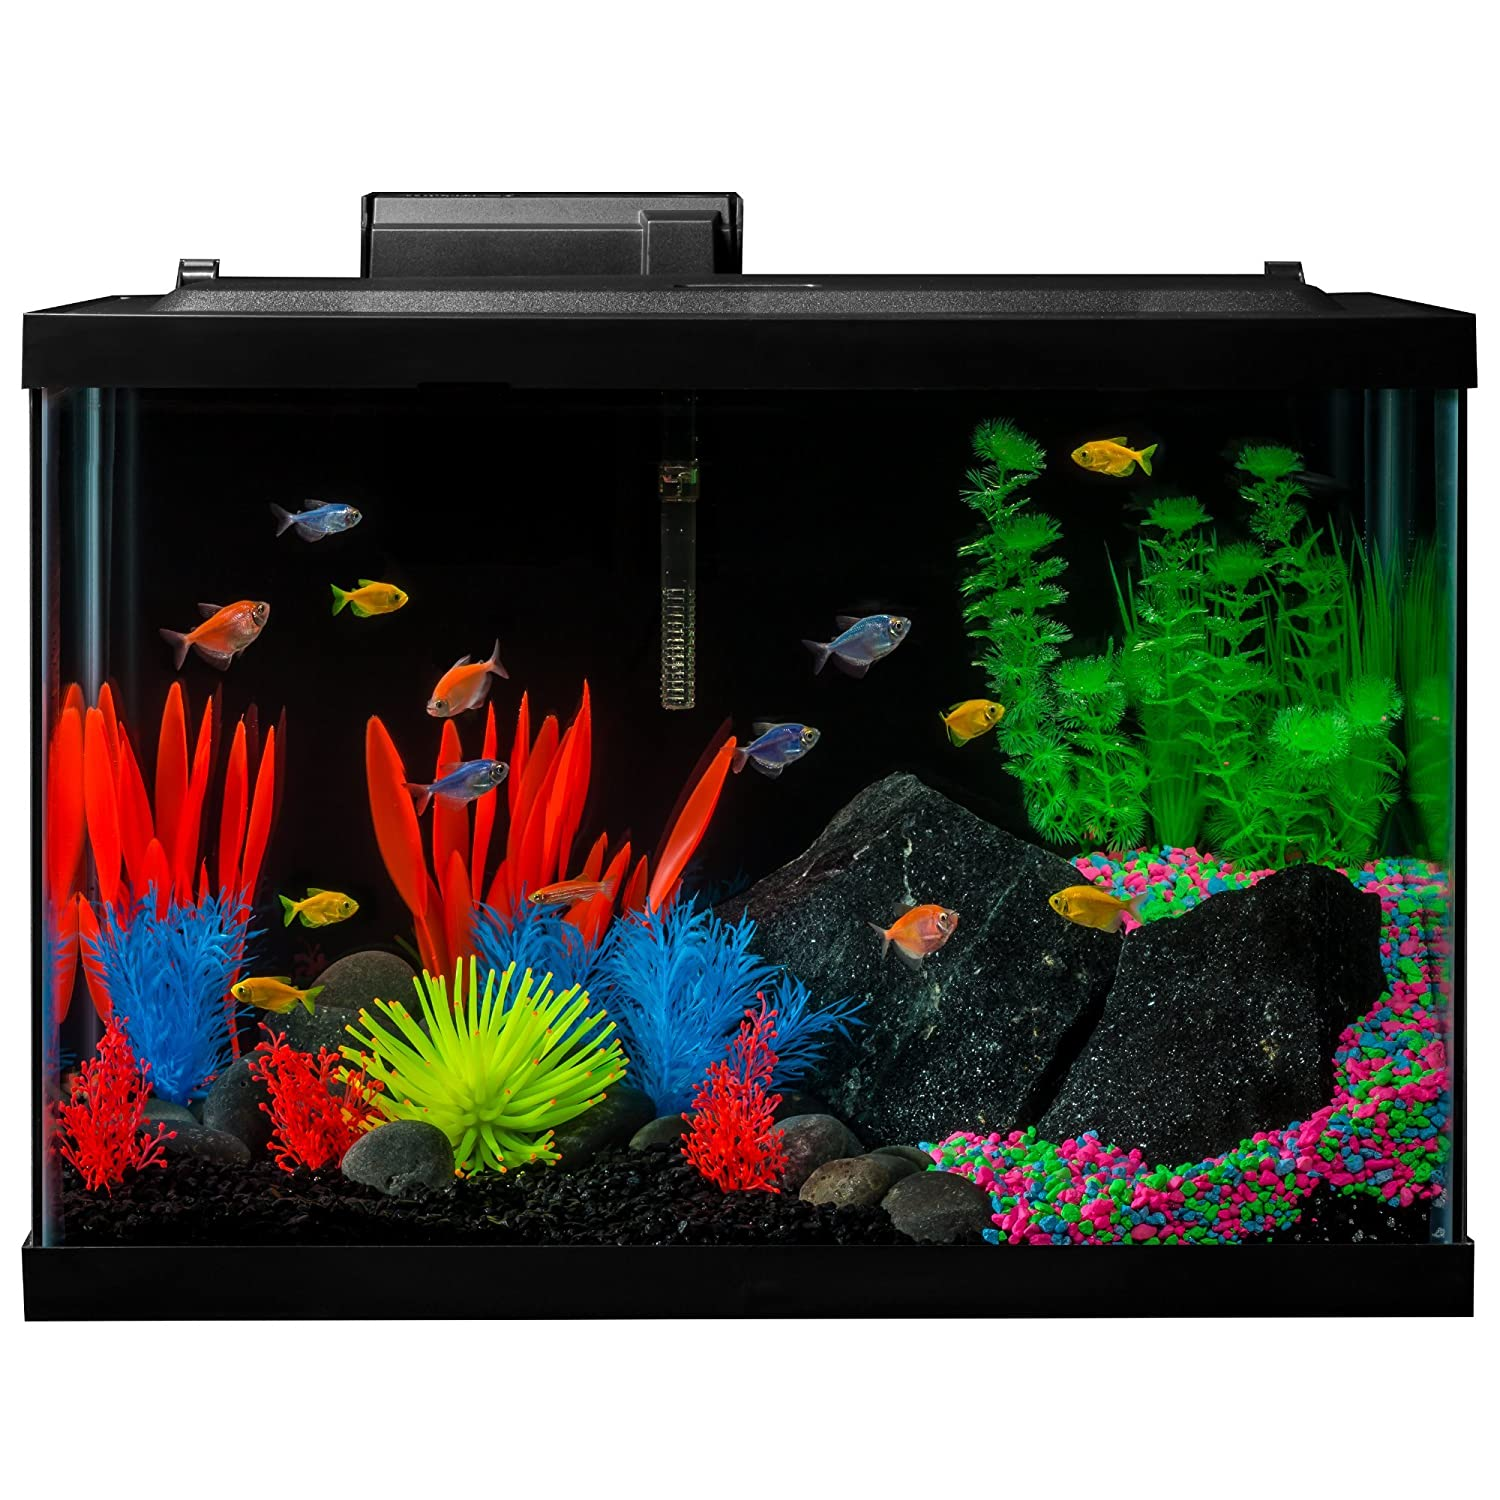 Top 10 Best 20 Gallon Fish Tanks